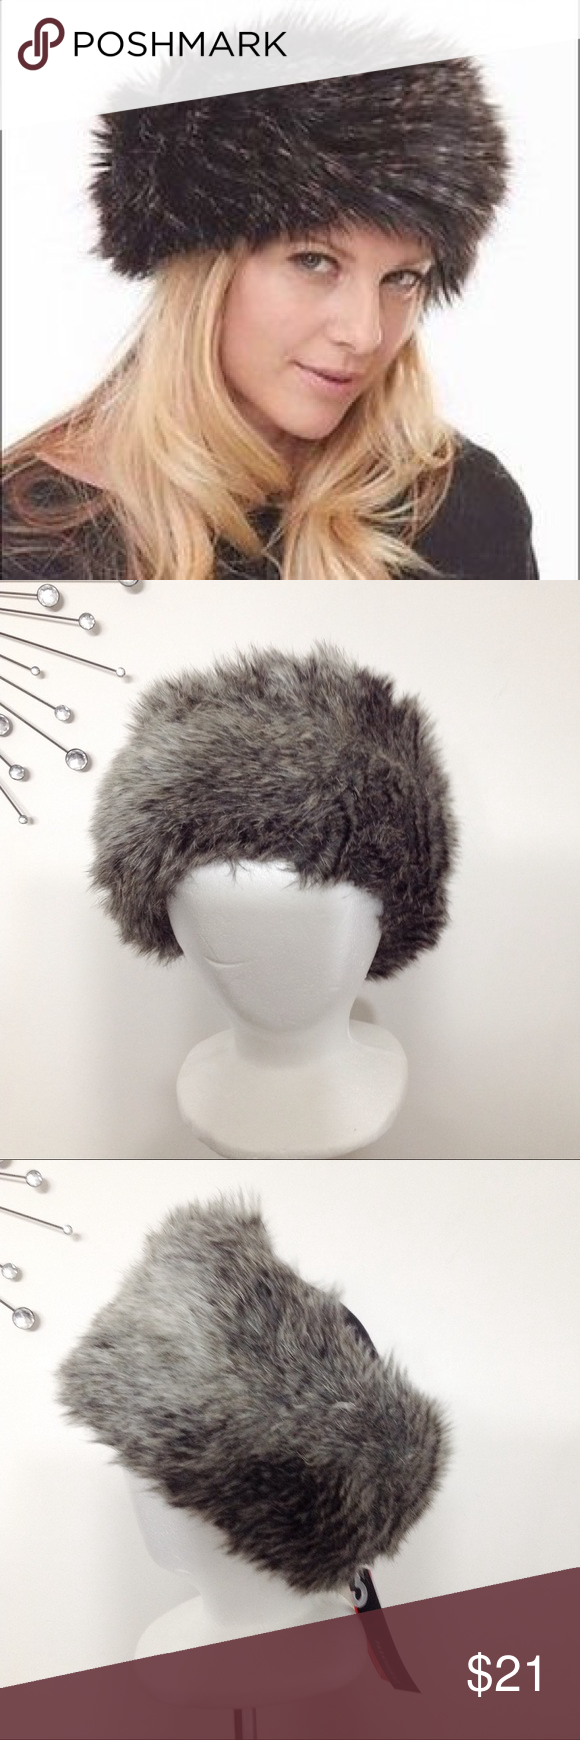 56f6561b7c3eda Parkhurst Faux Fur Hat Perfect for everyday wear on winter days, this Parkhurst  hat has